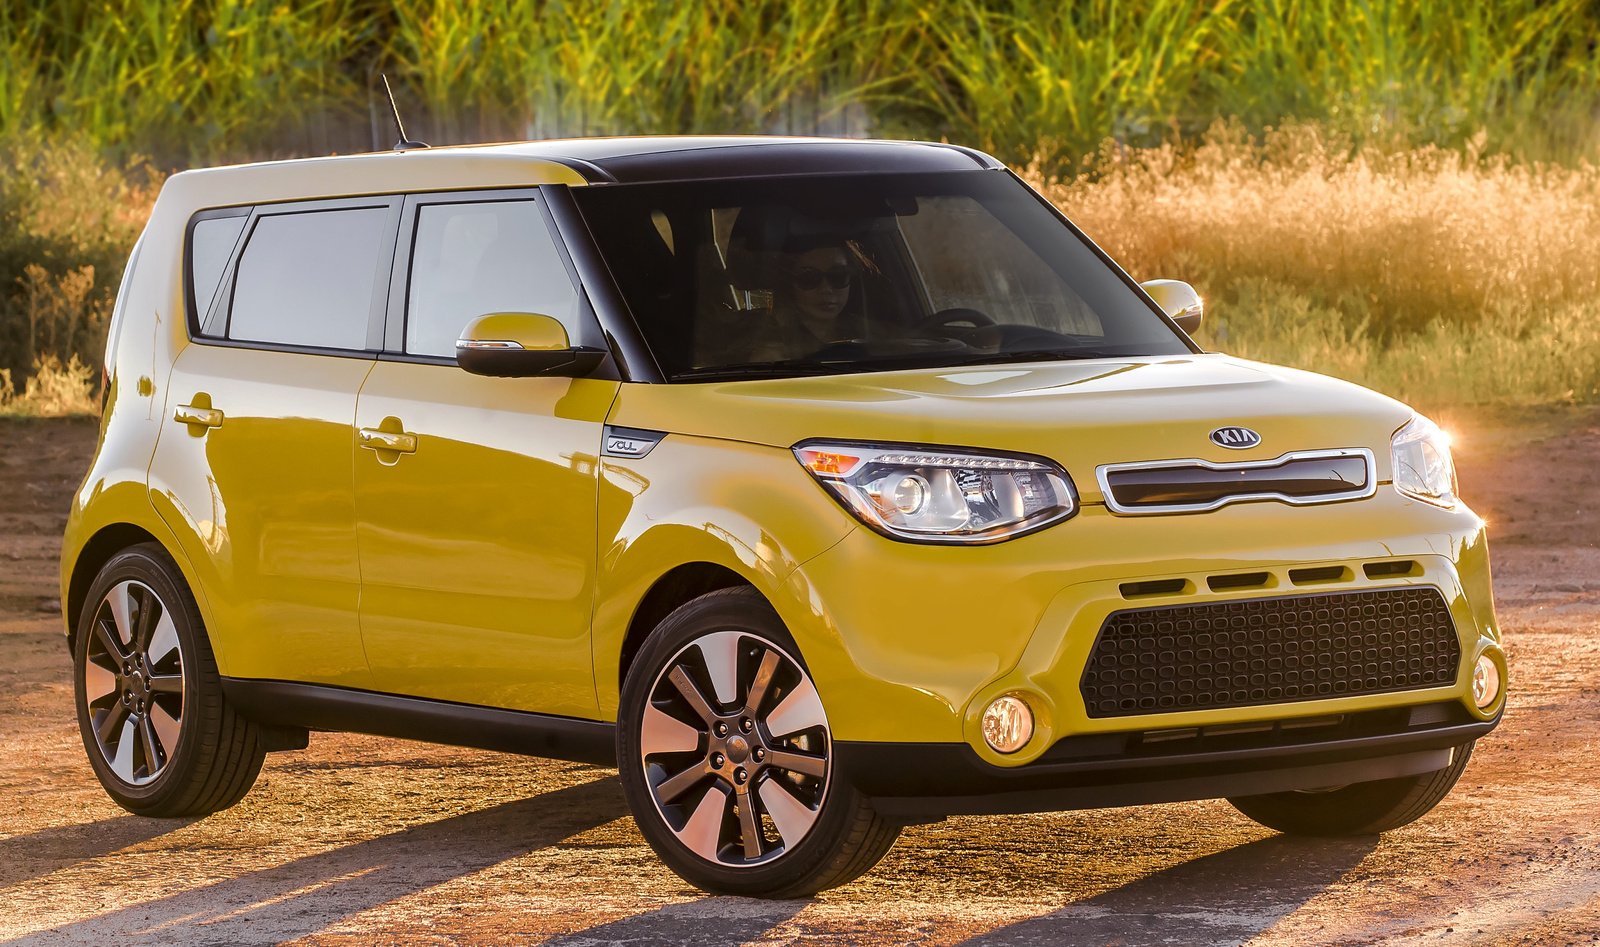 2015 kia soul brings style versatility to hatchbacks ancira kia news. Black Bedroom Furniture Sets. Home Design Ideas